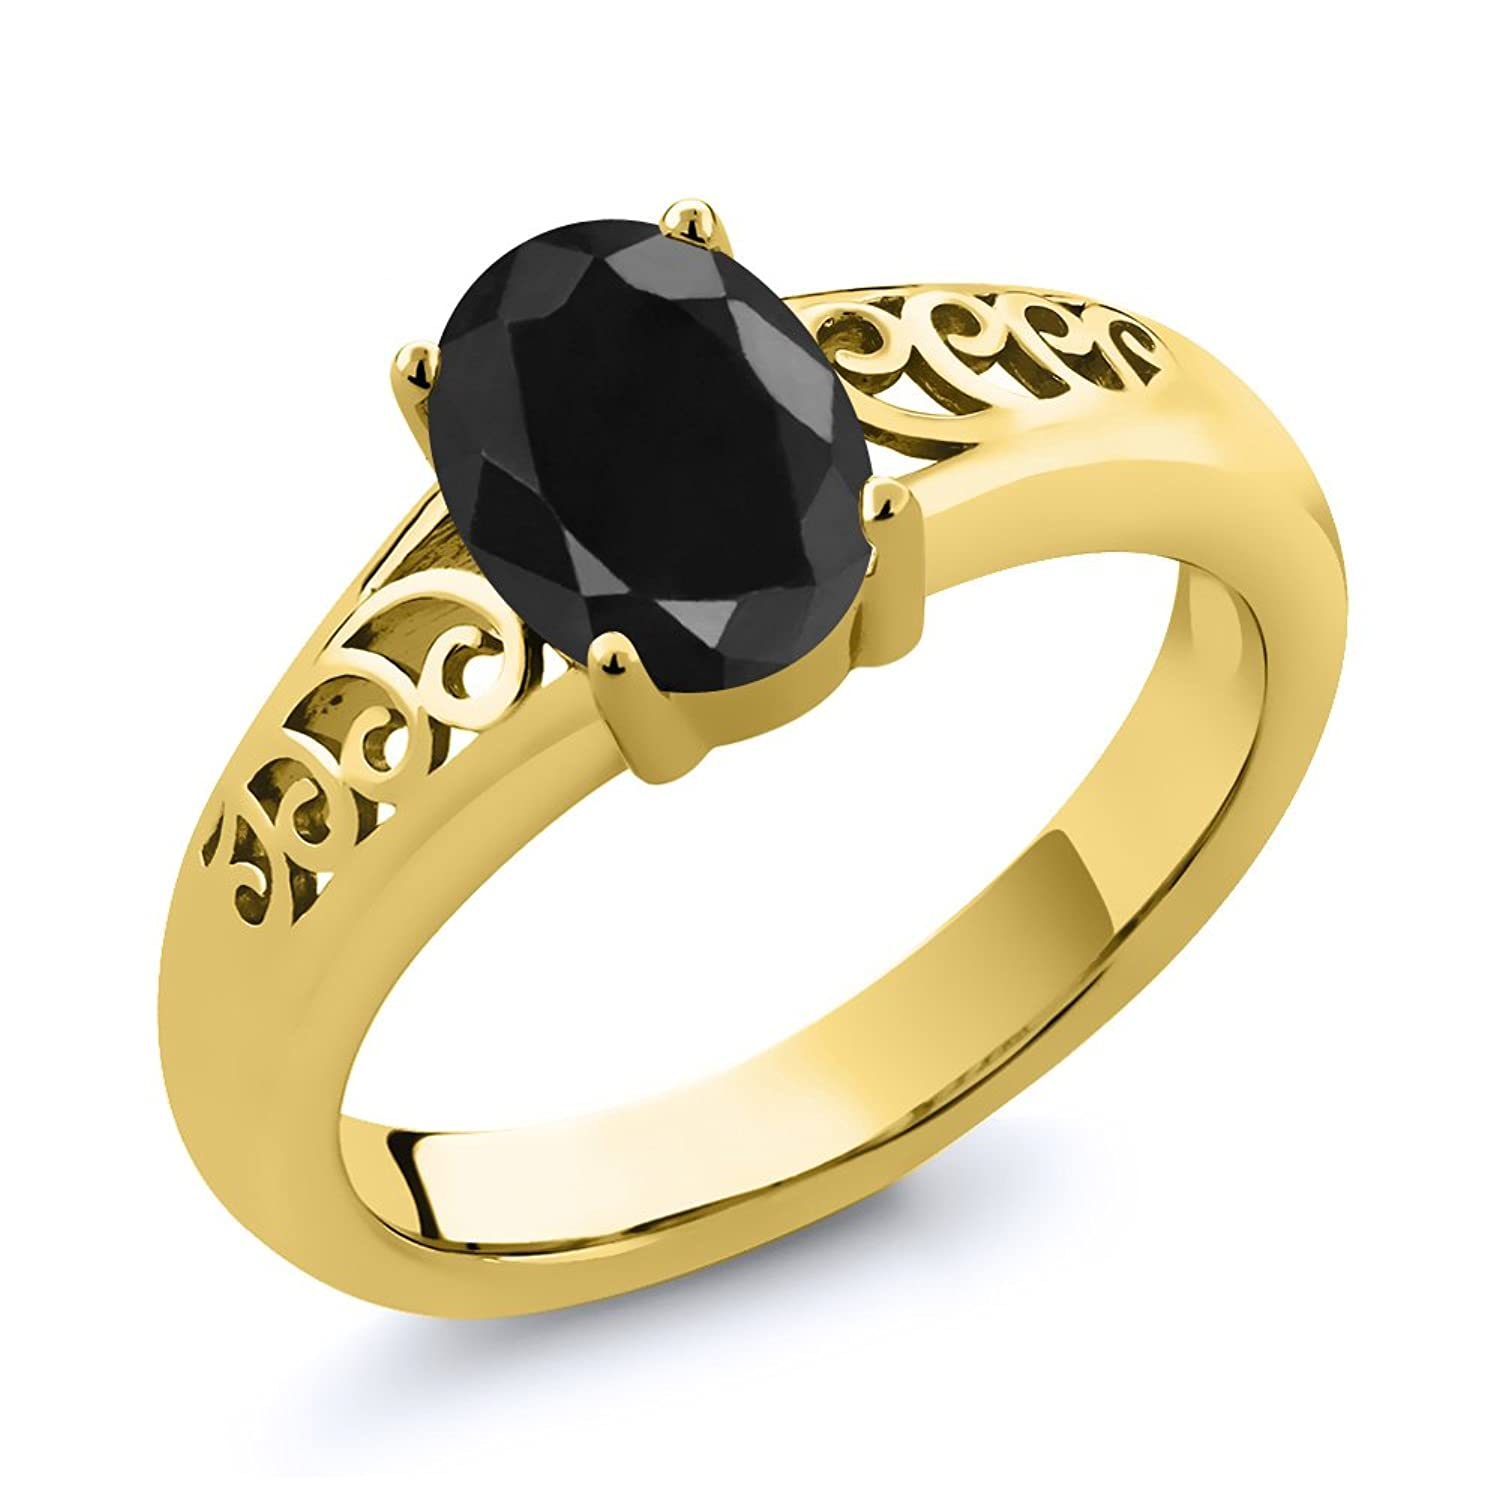 1.07 Ct Oval Black Sapphire 14K Yellow Gold Ring